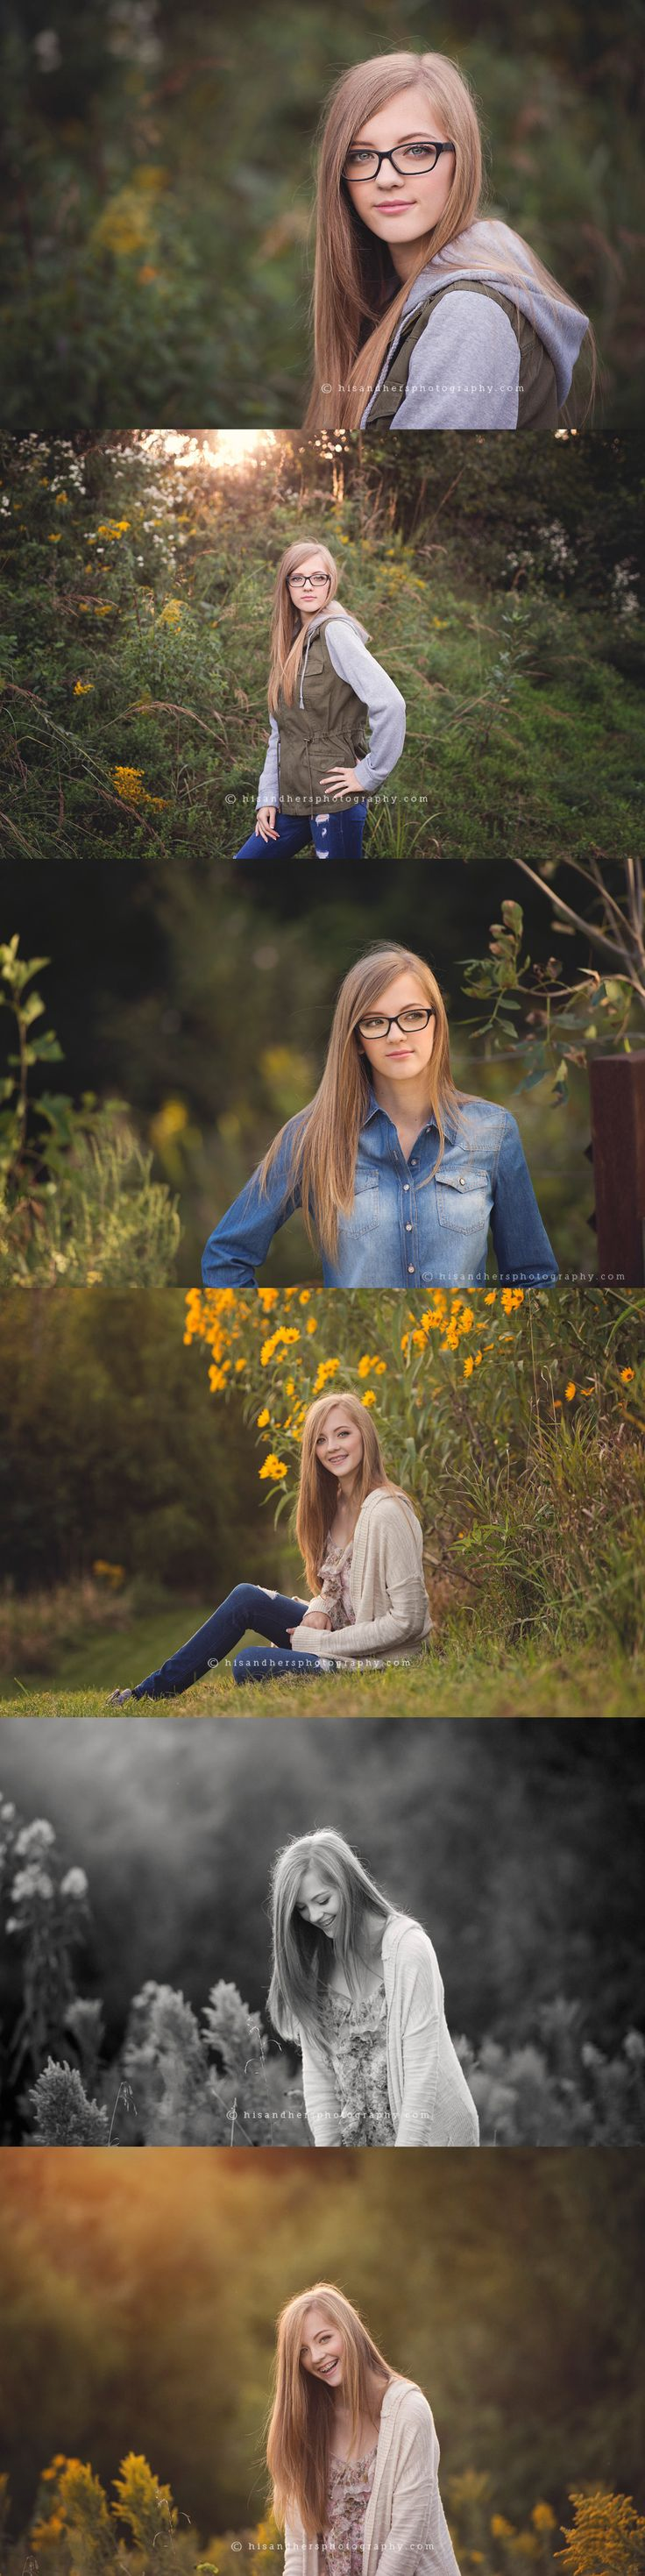 Des Moines, Iowa senior portrait photographer, Randy Milder | His and Hers #seniorpictures #seniorpics